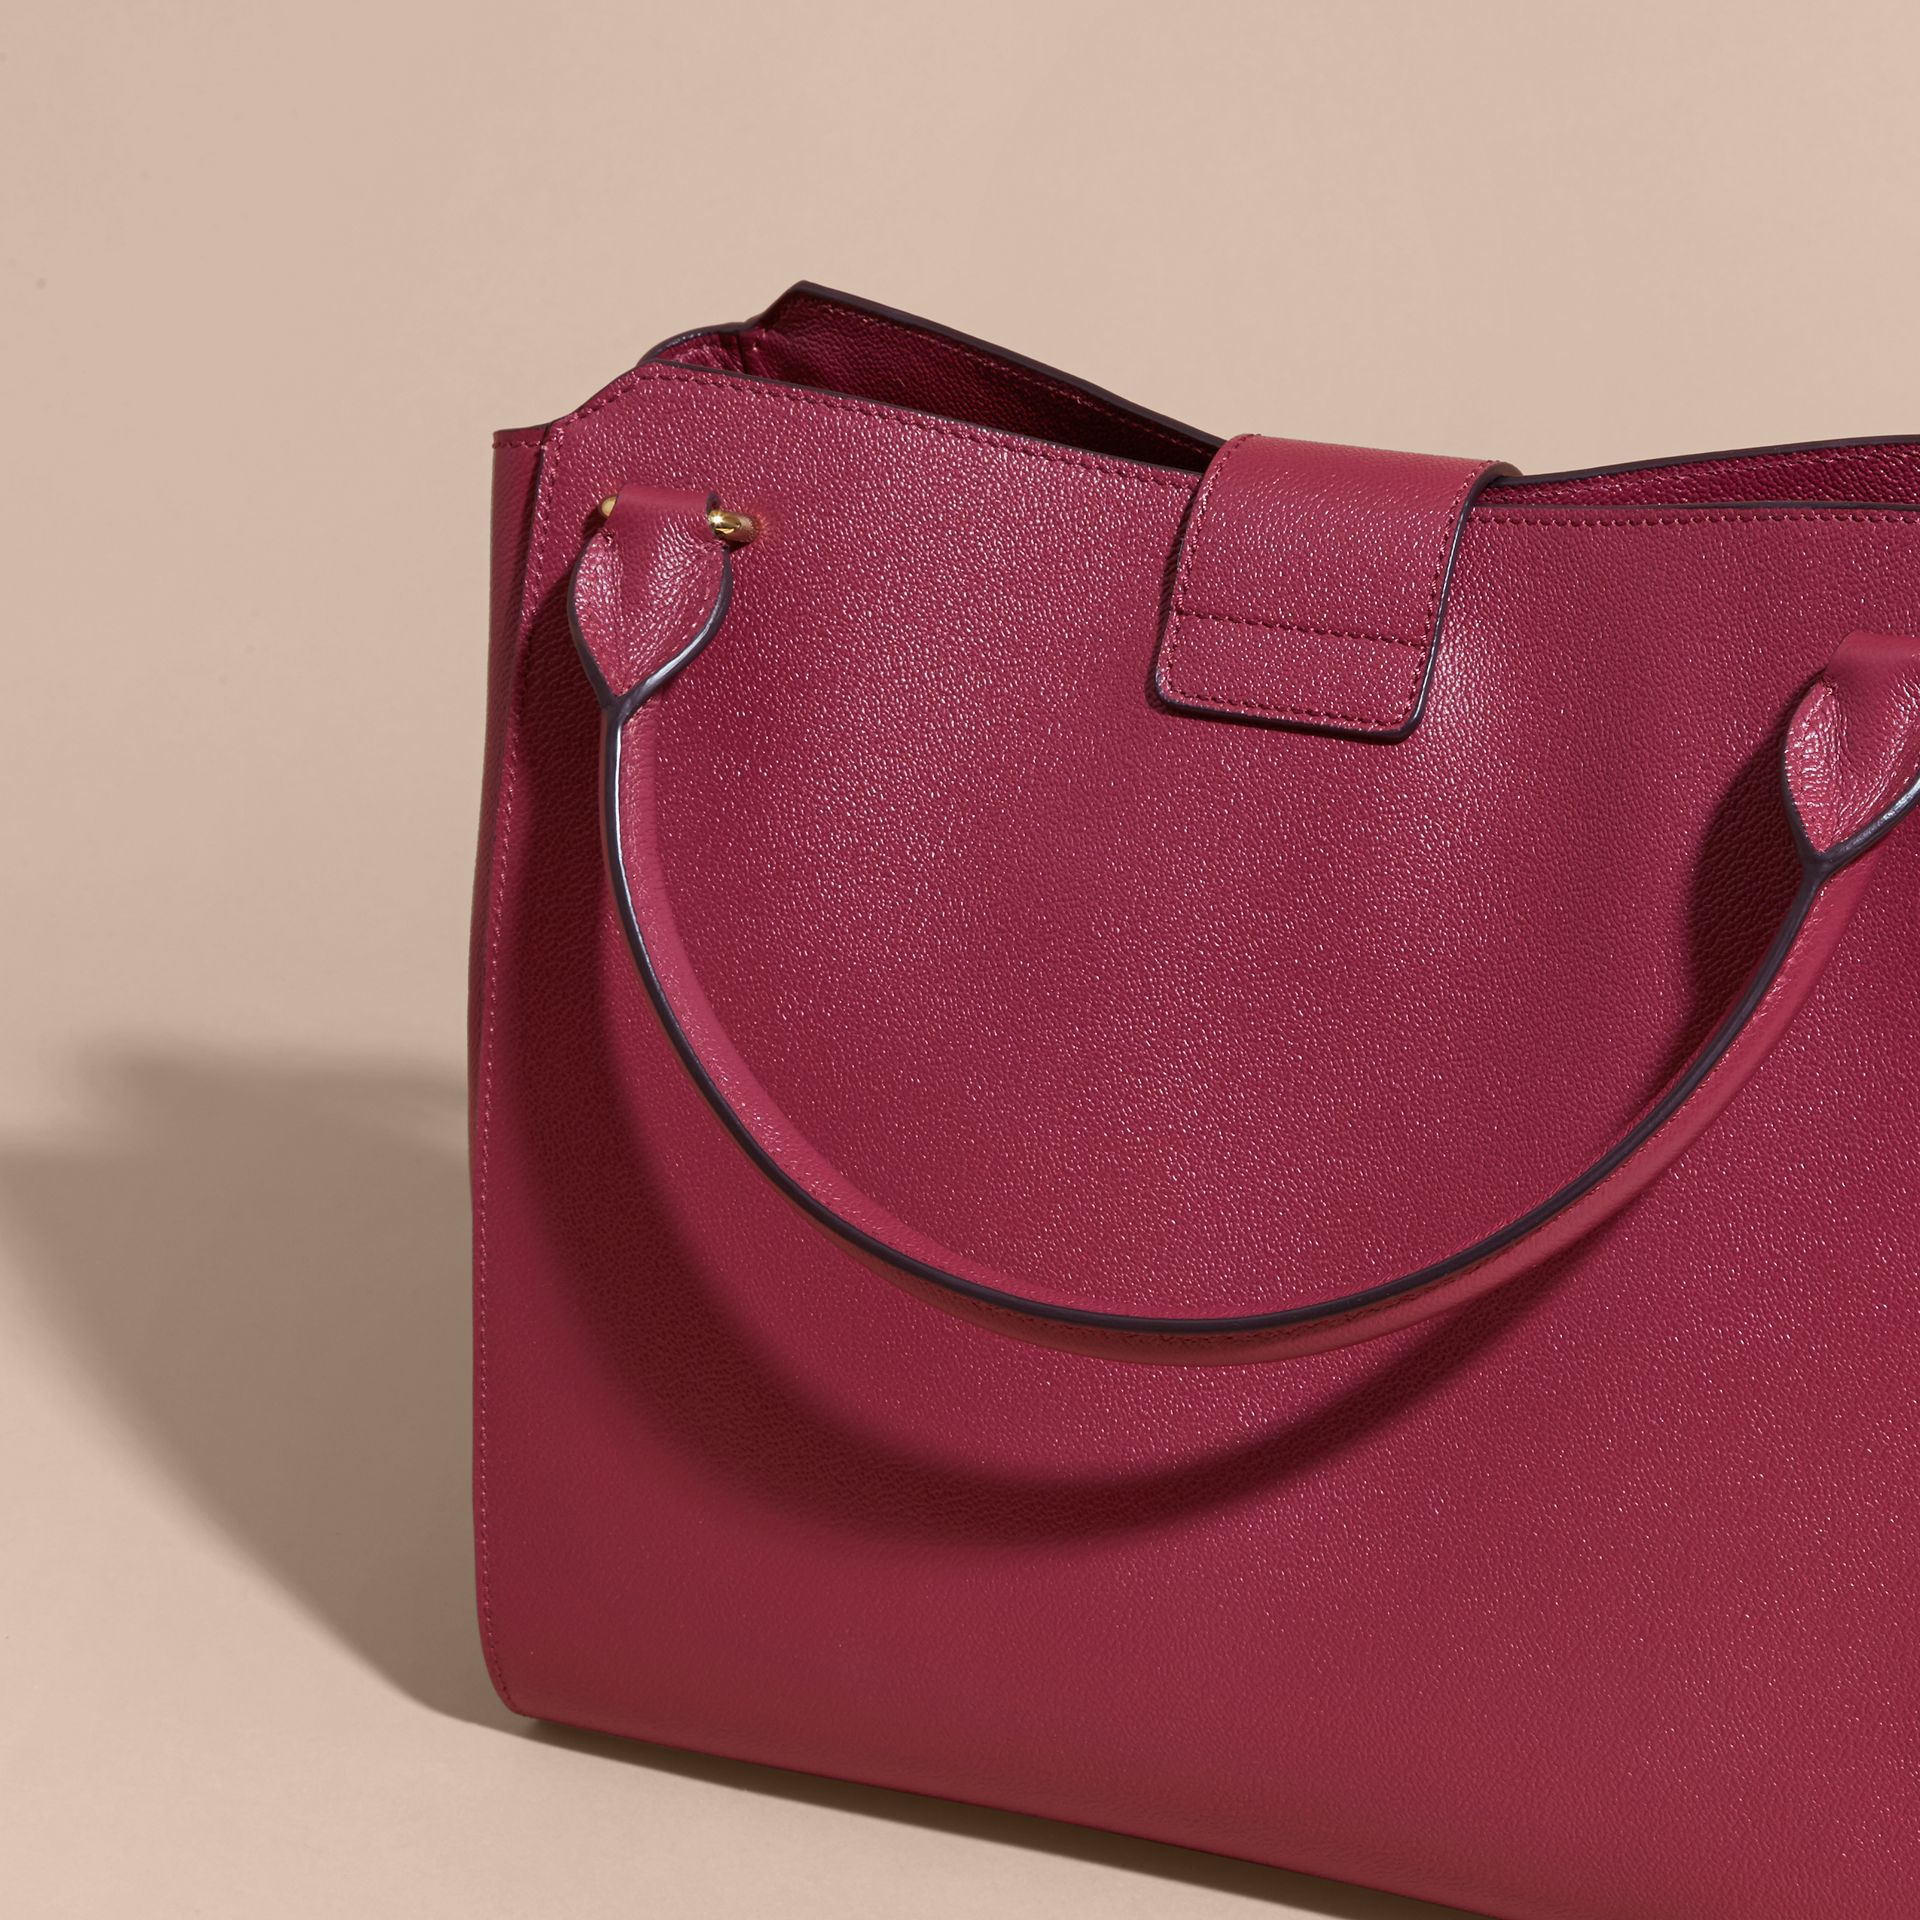 Dark plum The Large Buckle Tote in Grainy Leather Dark Plum - gallery image 5